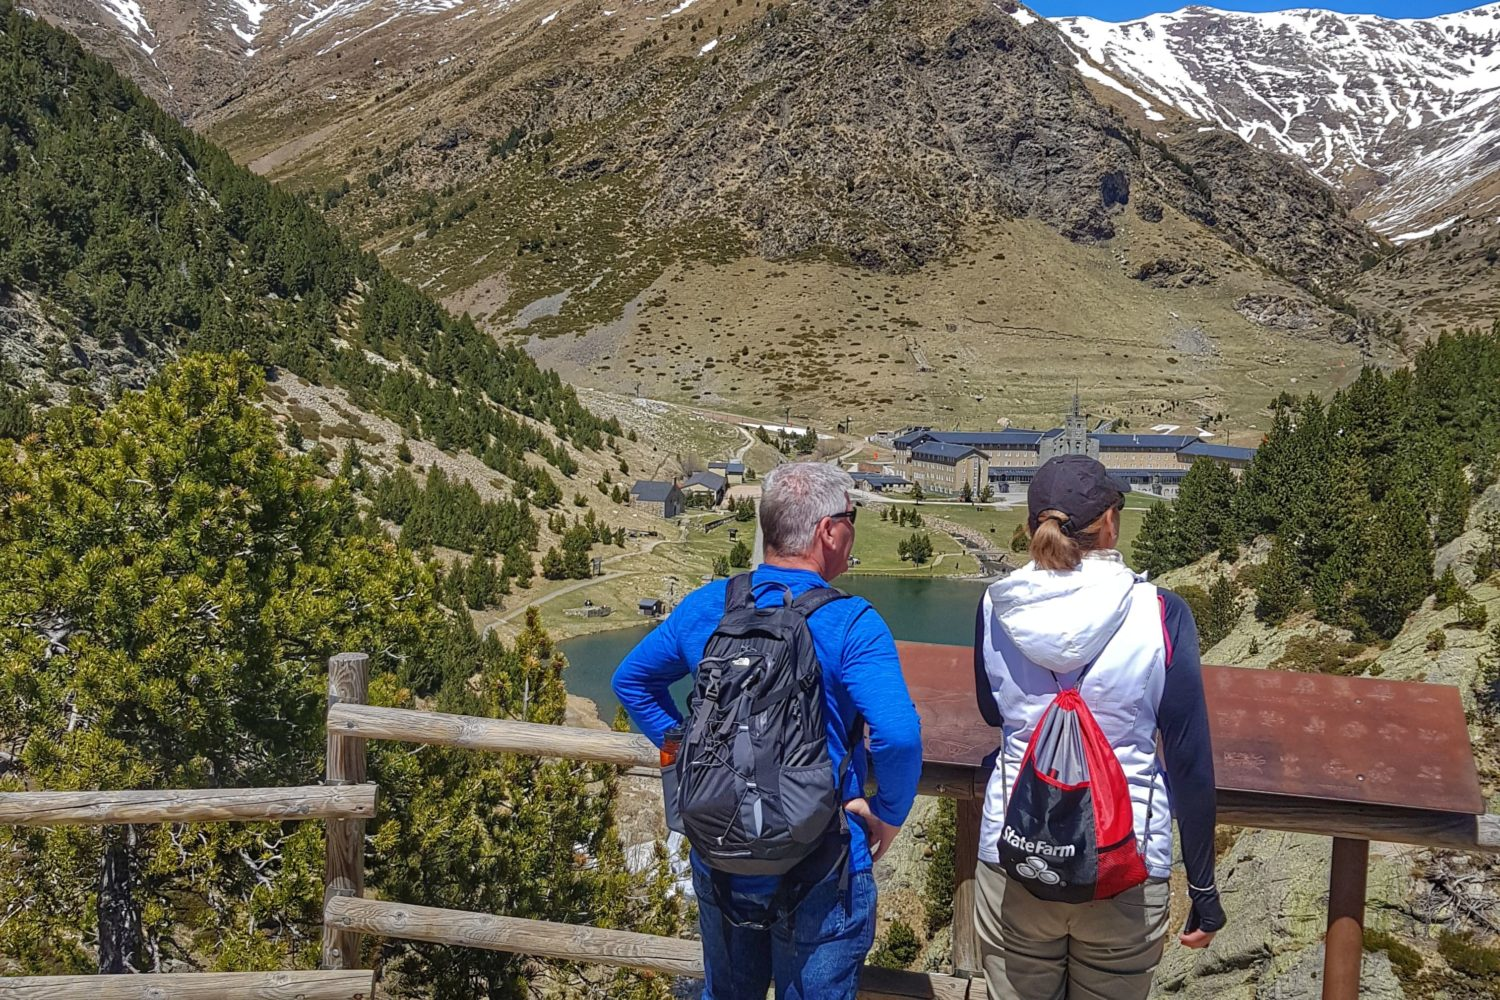 Enjoy majestic views around the Nuria Valley and observe the wildlife